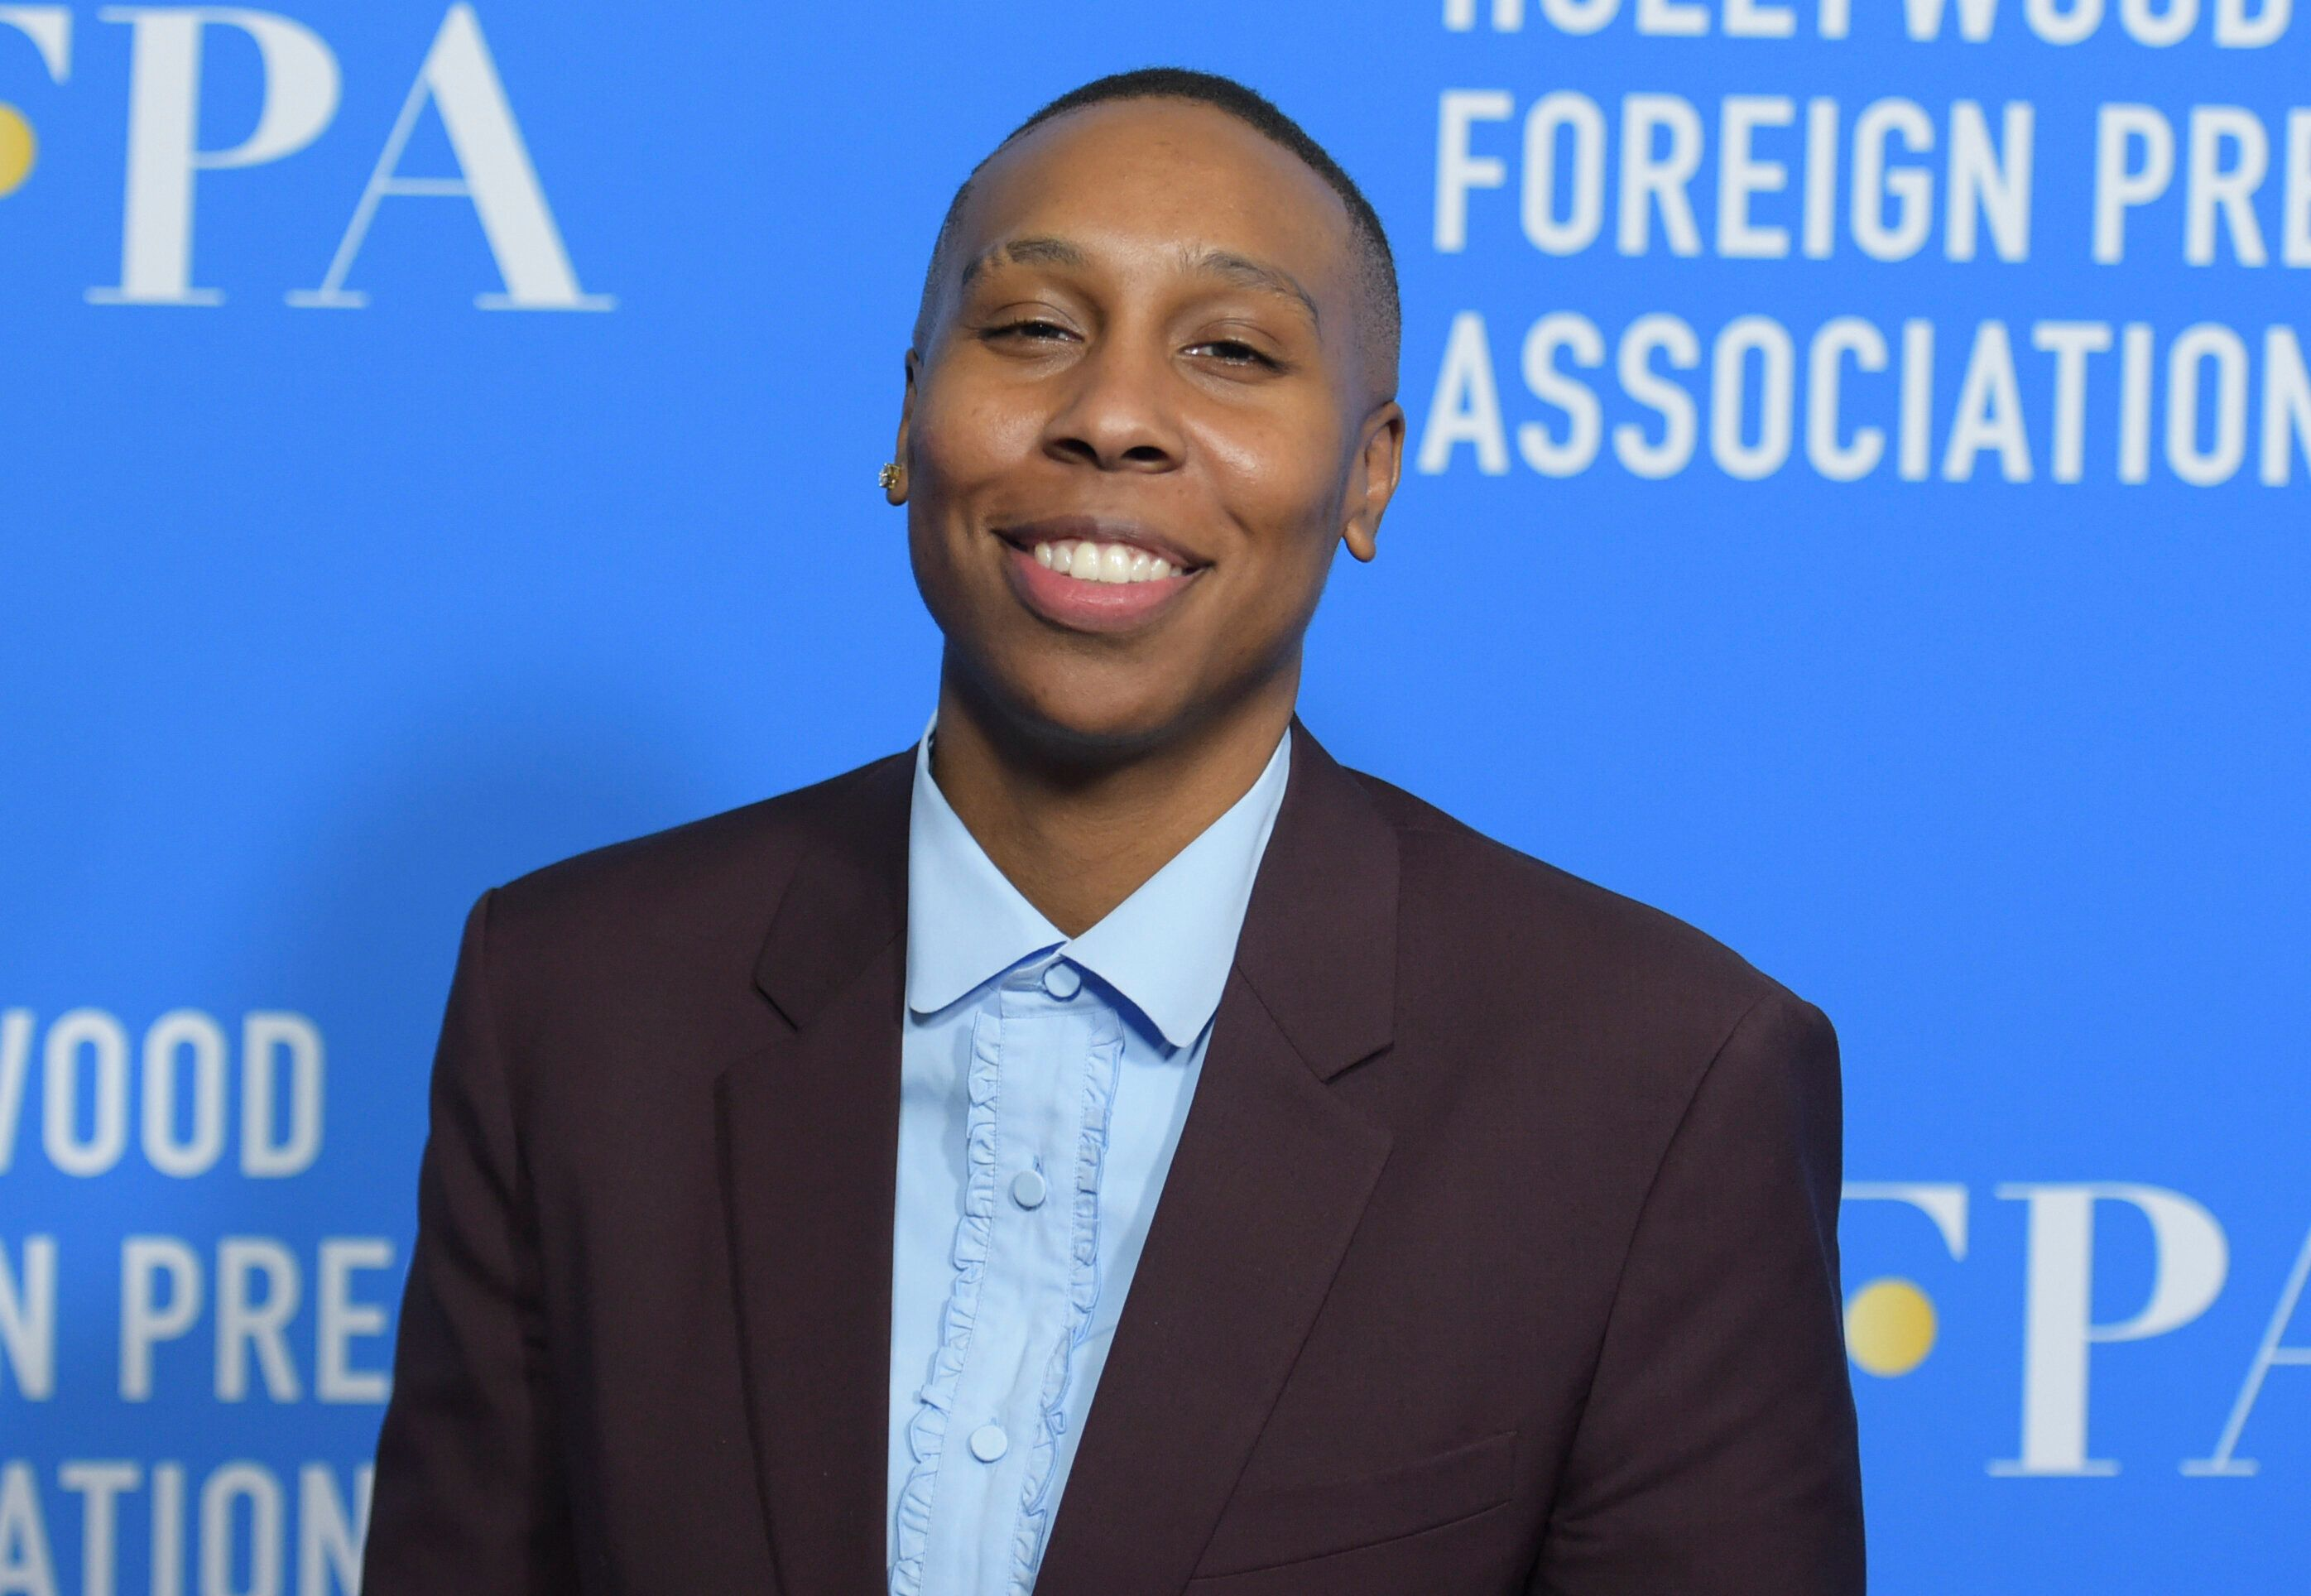 Lena Waithe arrives at the Hollywood Foreign Press Association Grants Banquet at The Beverly Hilton hotel on Thursday, Aug. 9, 2018, in Beverly Hills, Calif. (Photo by Richard Shotwell/Invision/AP)